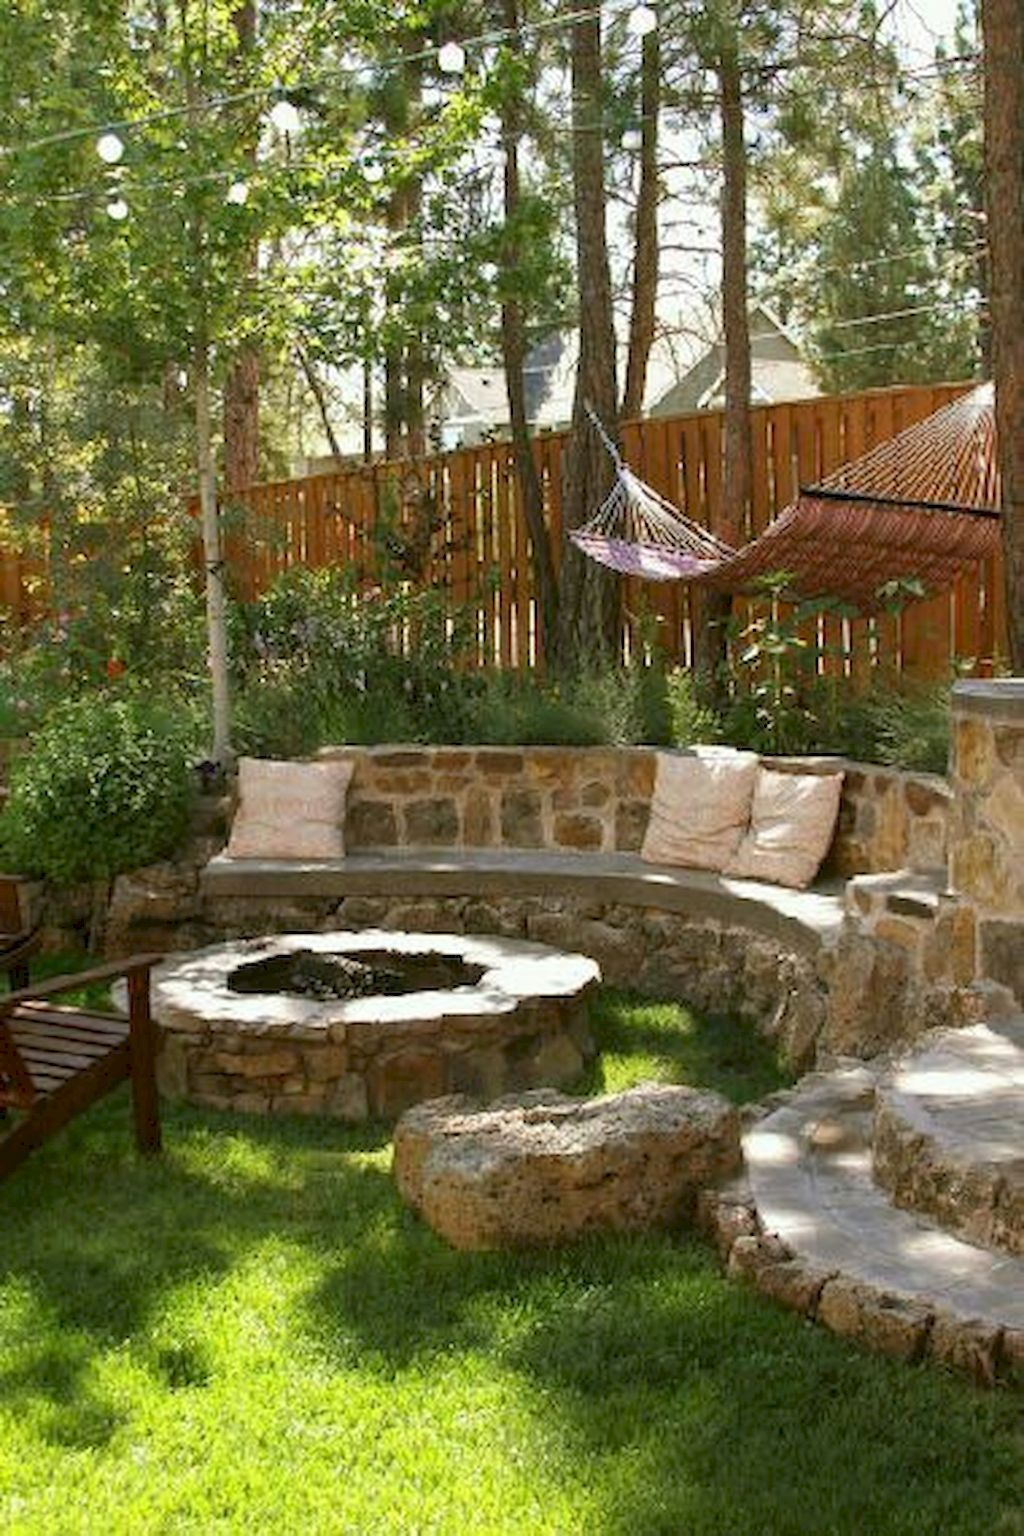 80 Small Backyard Landscaping Ideas On A Budget Patio Ideas throughout 11 Clever Designs of How to Build Small Backyard Patio Ideas On A Budget